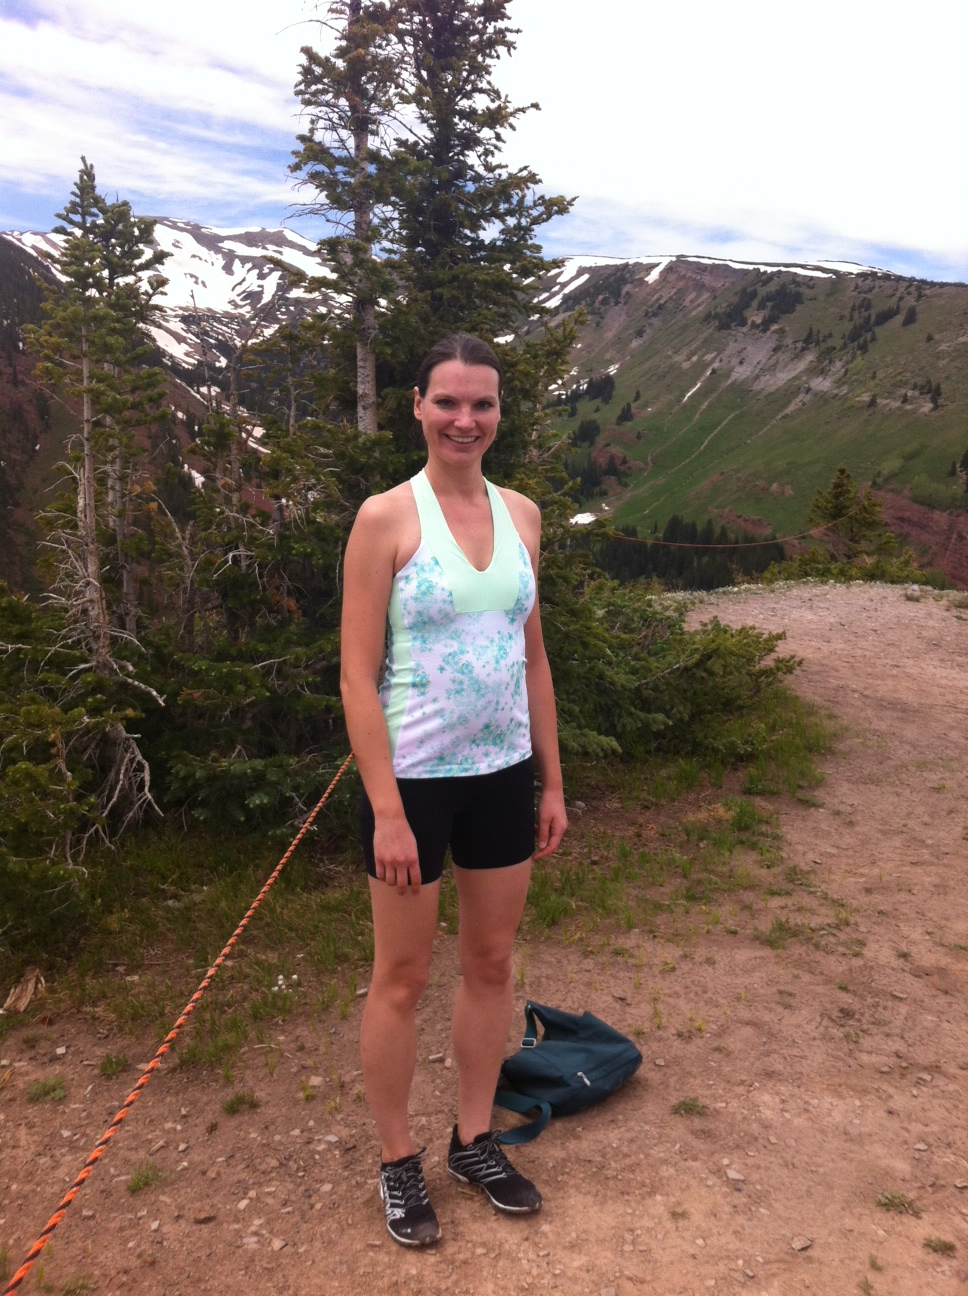 On Thursday, I went for a hike with some friends. See? Colorado is BEAUTIFUL!